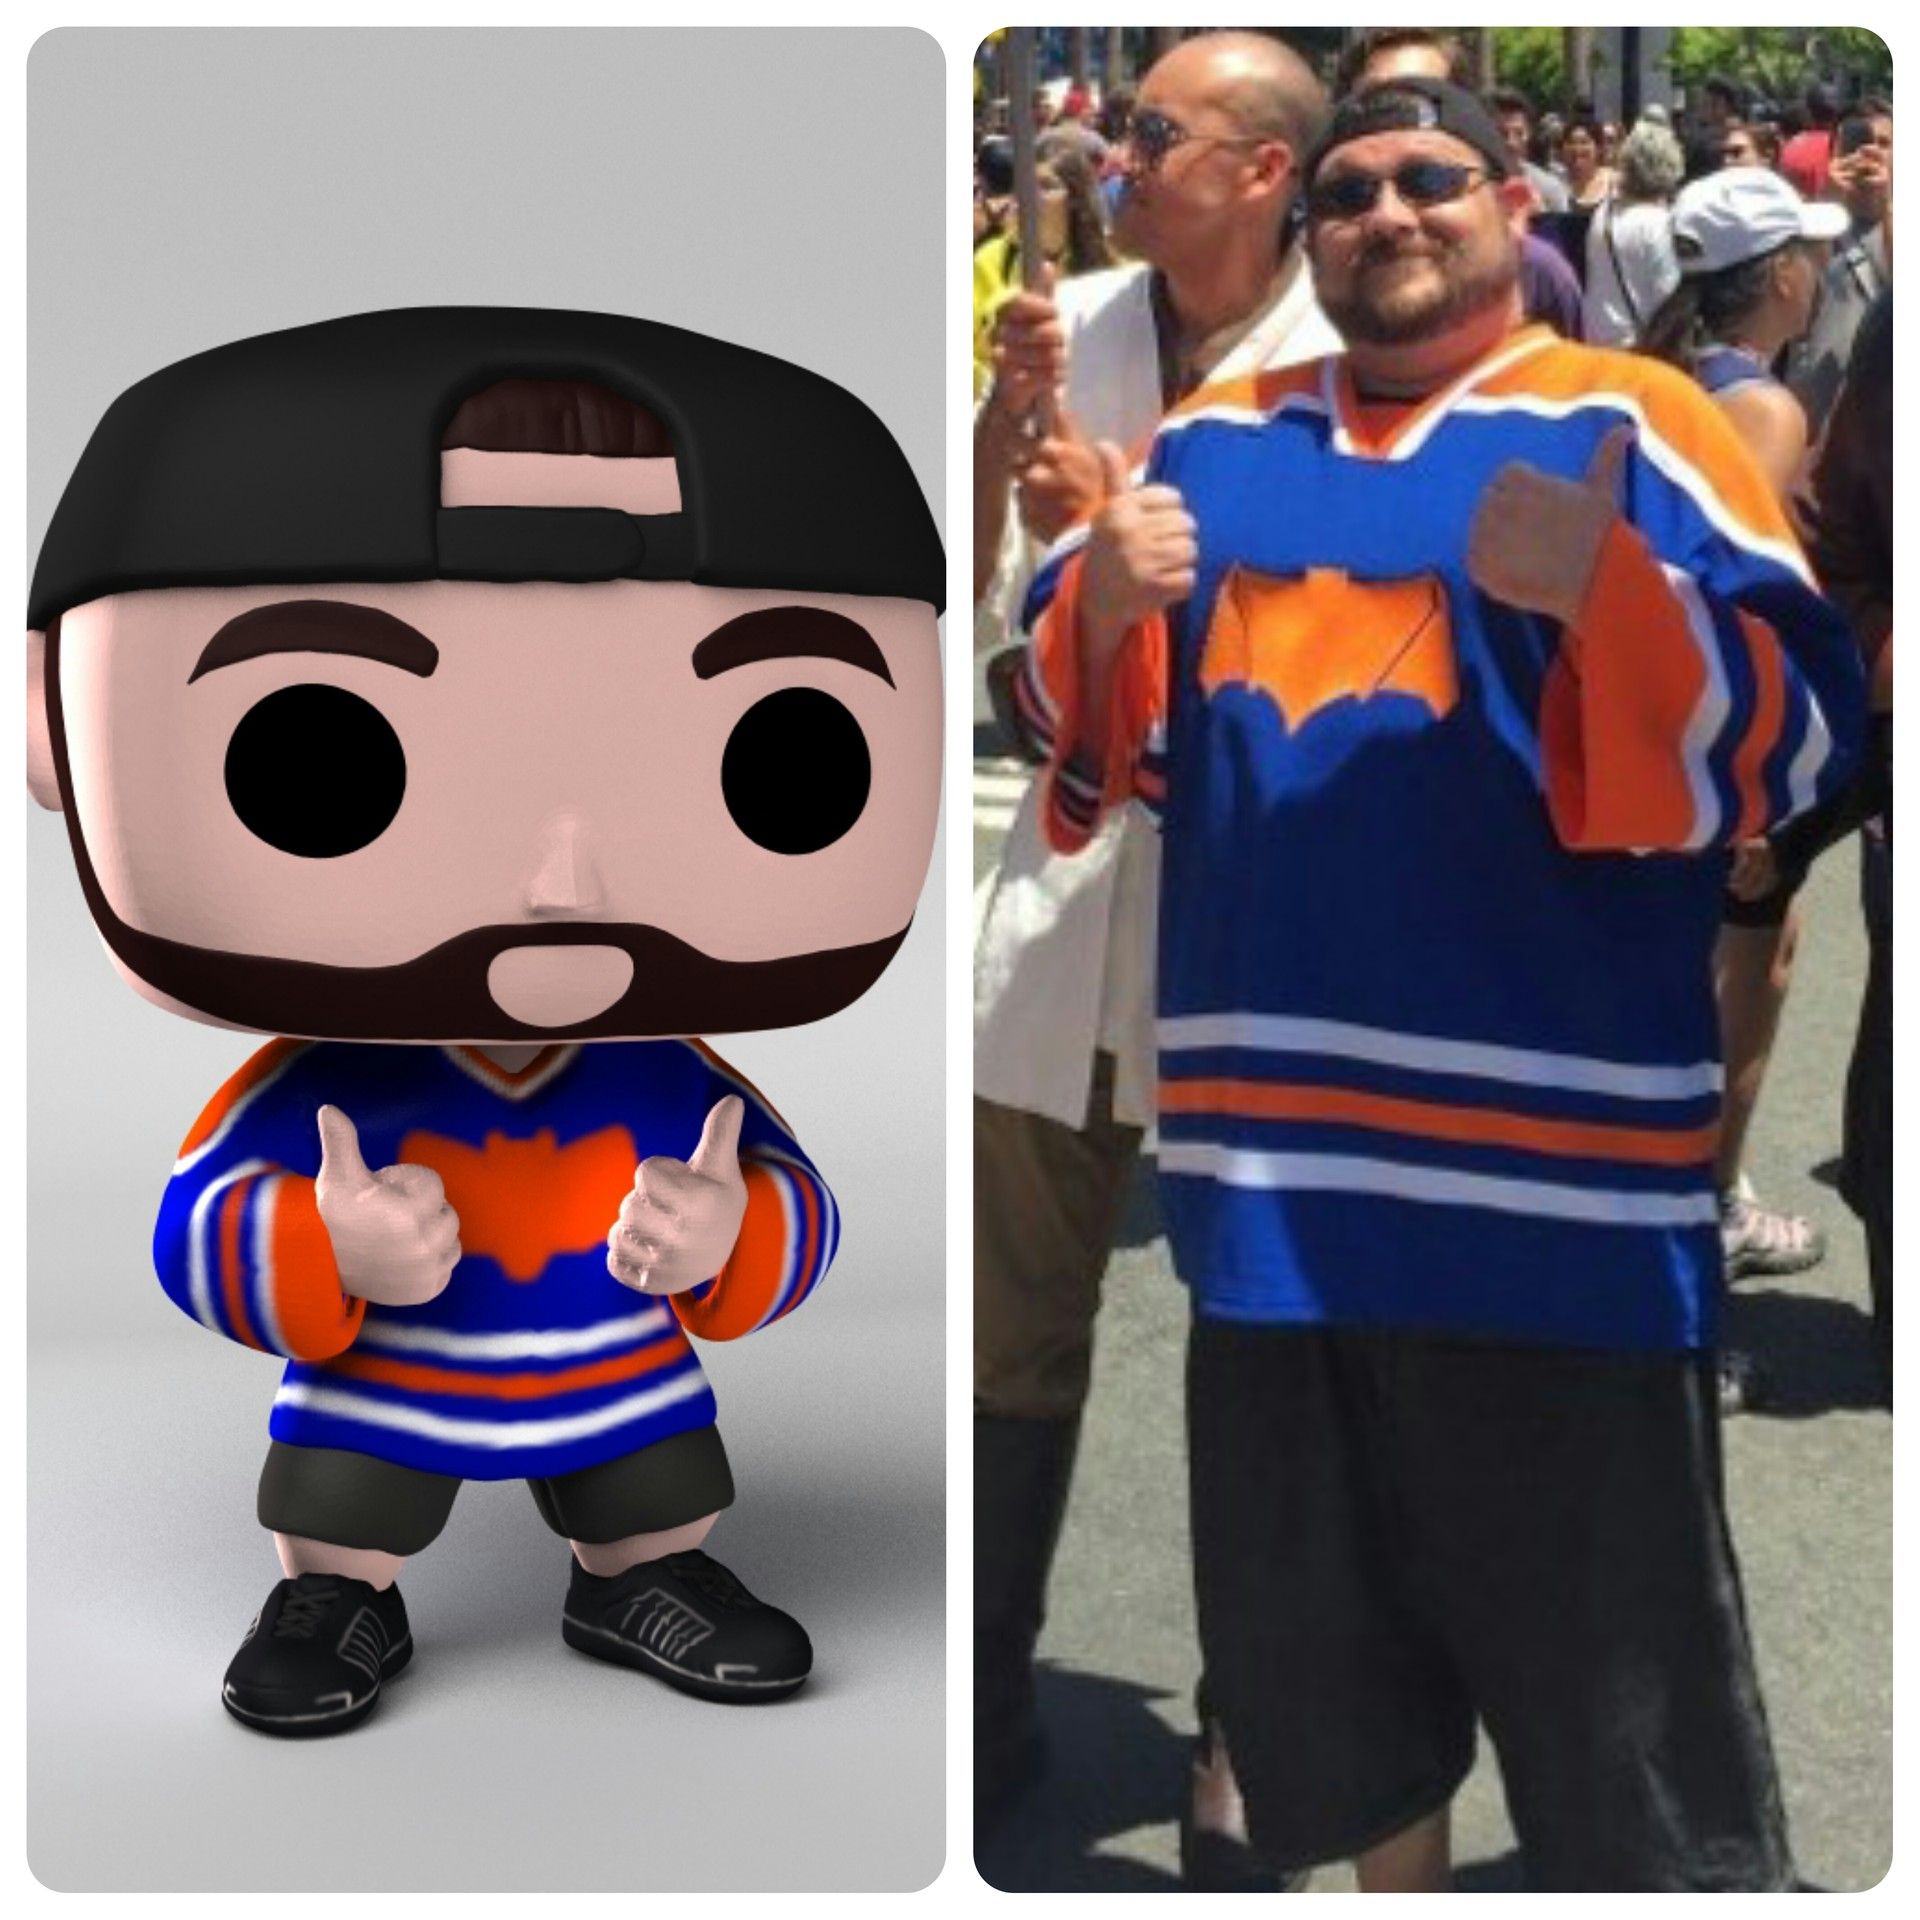 Funko POP figure I designed in ZBrush, based on my Kevin Smith cosplay.